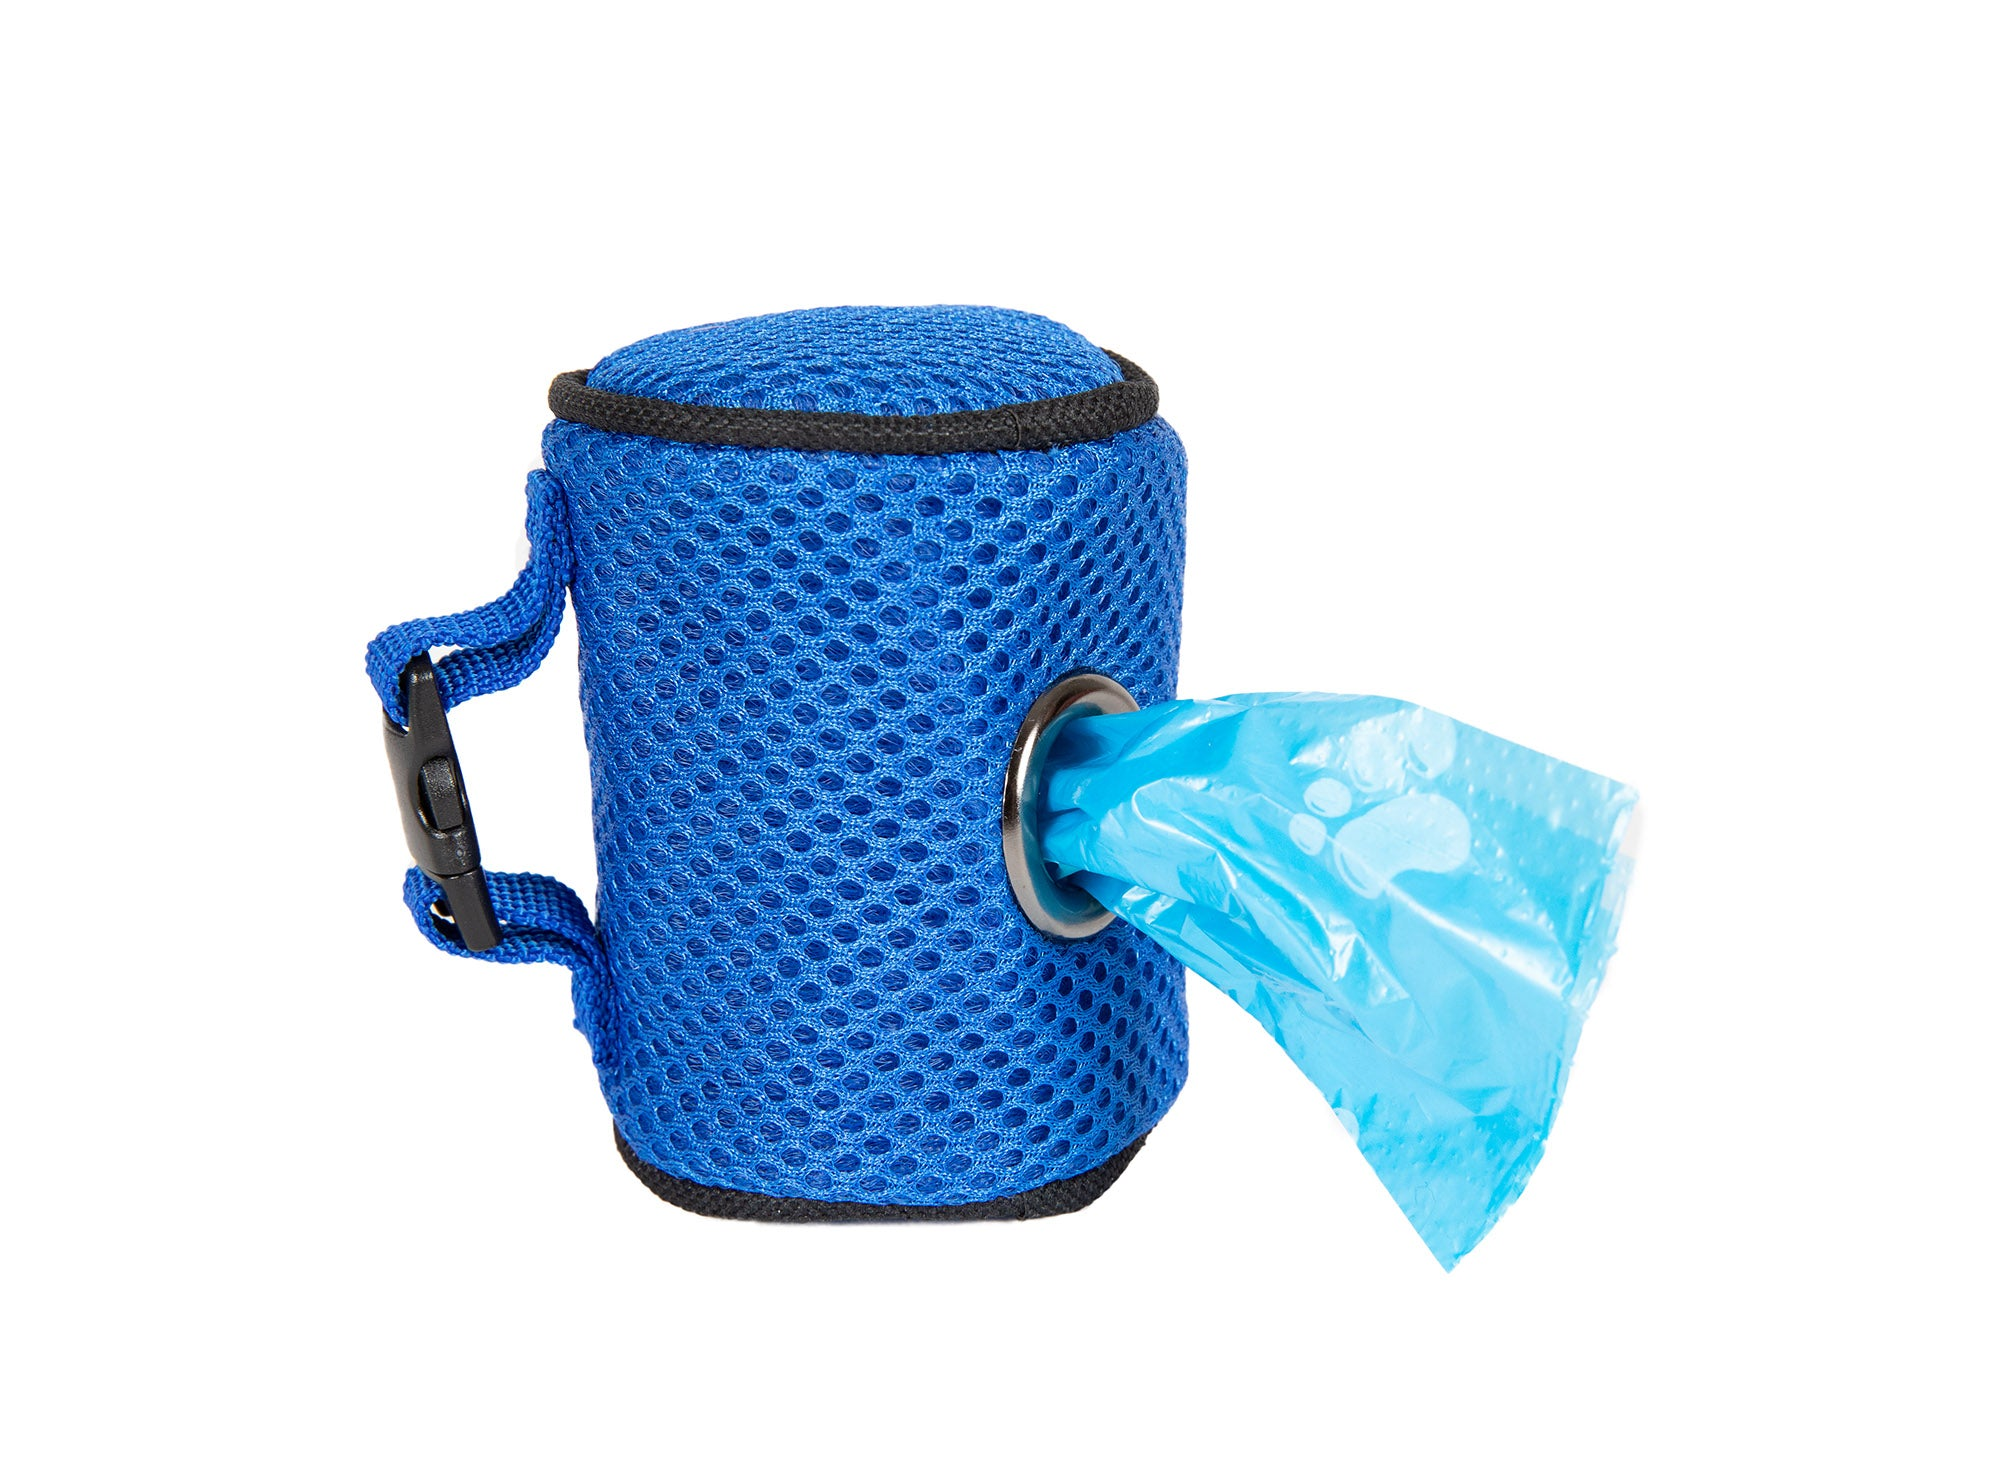 Mesh Bag Holders - 7 Color Options - Poop Bag Holder